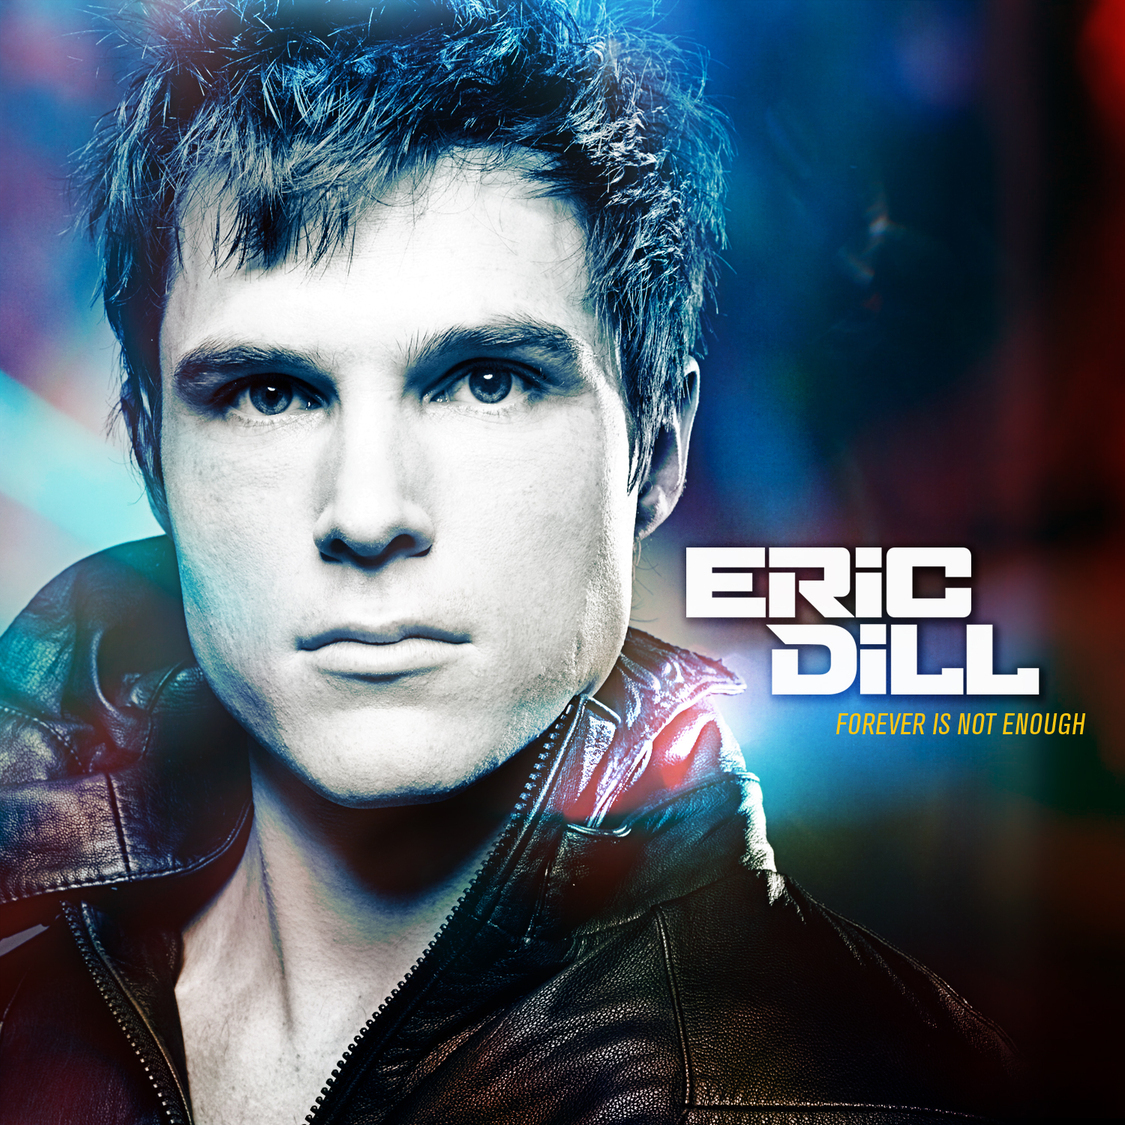 eric dill 2015 Gallery